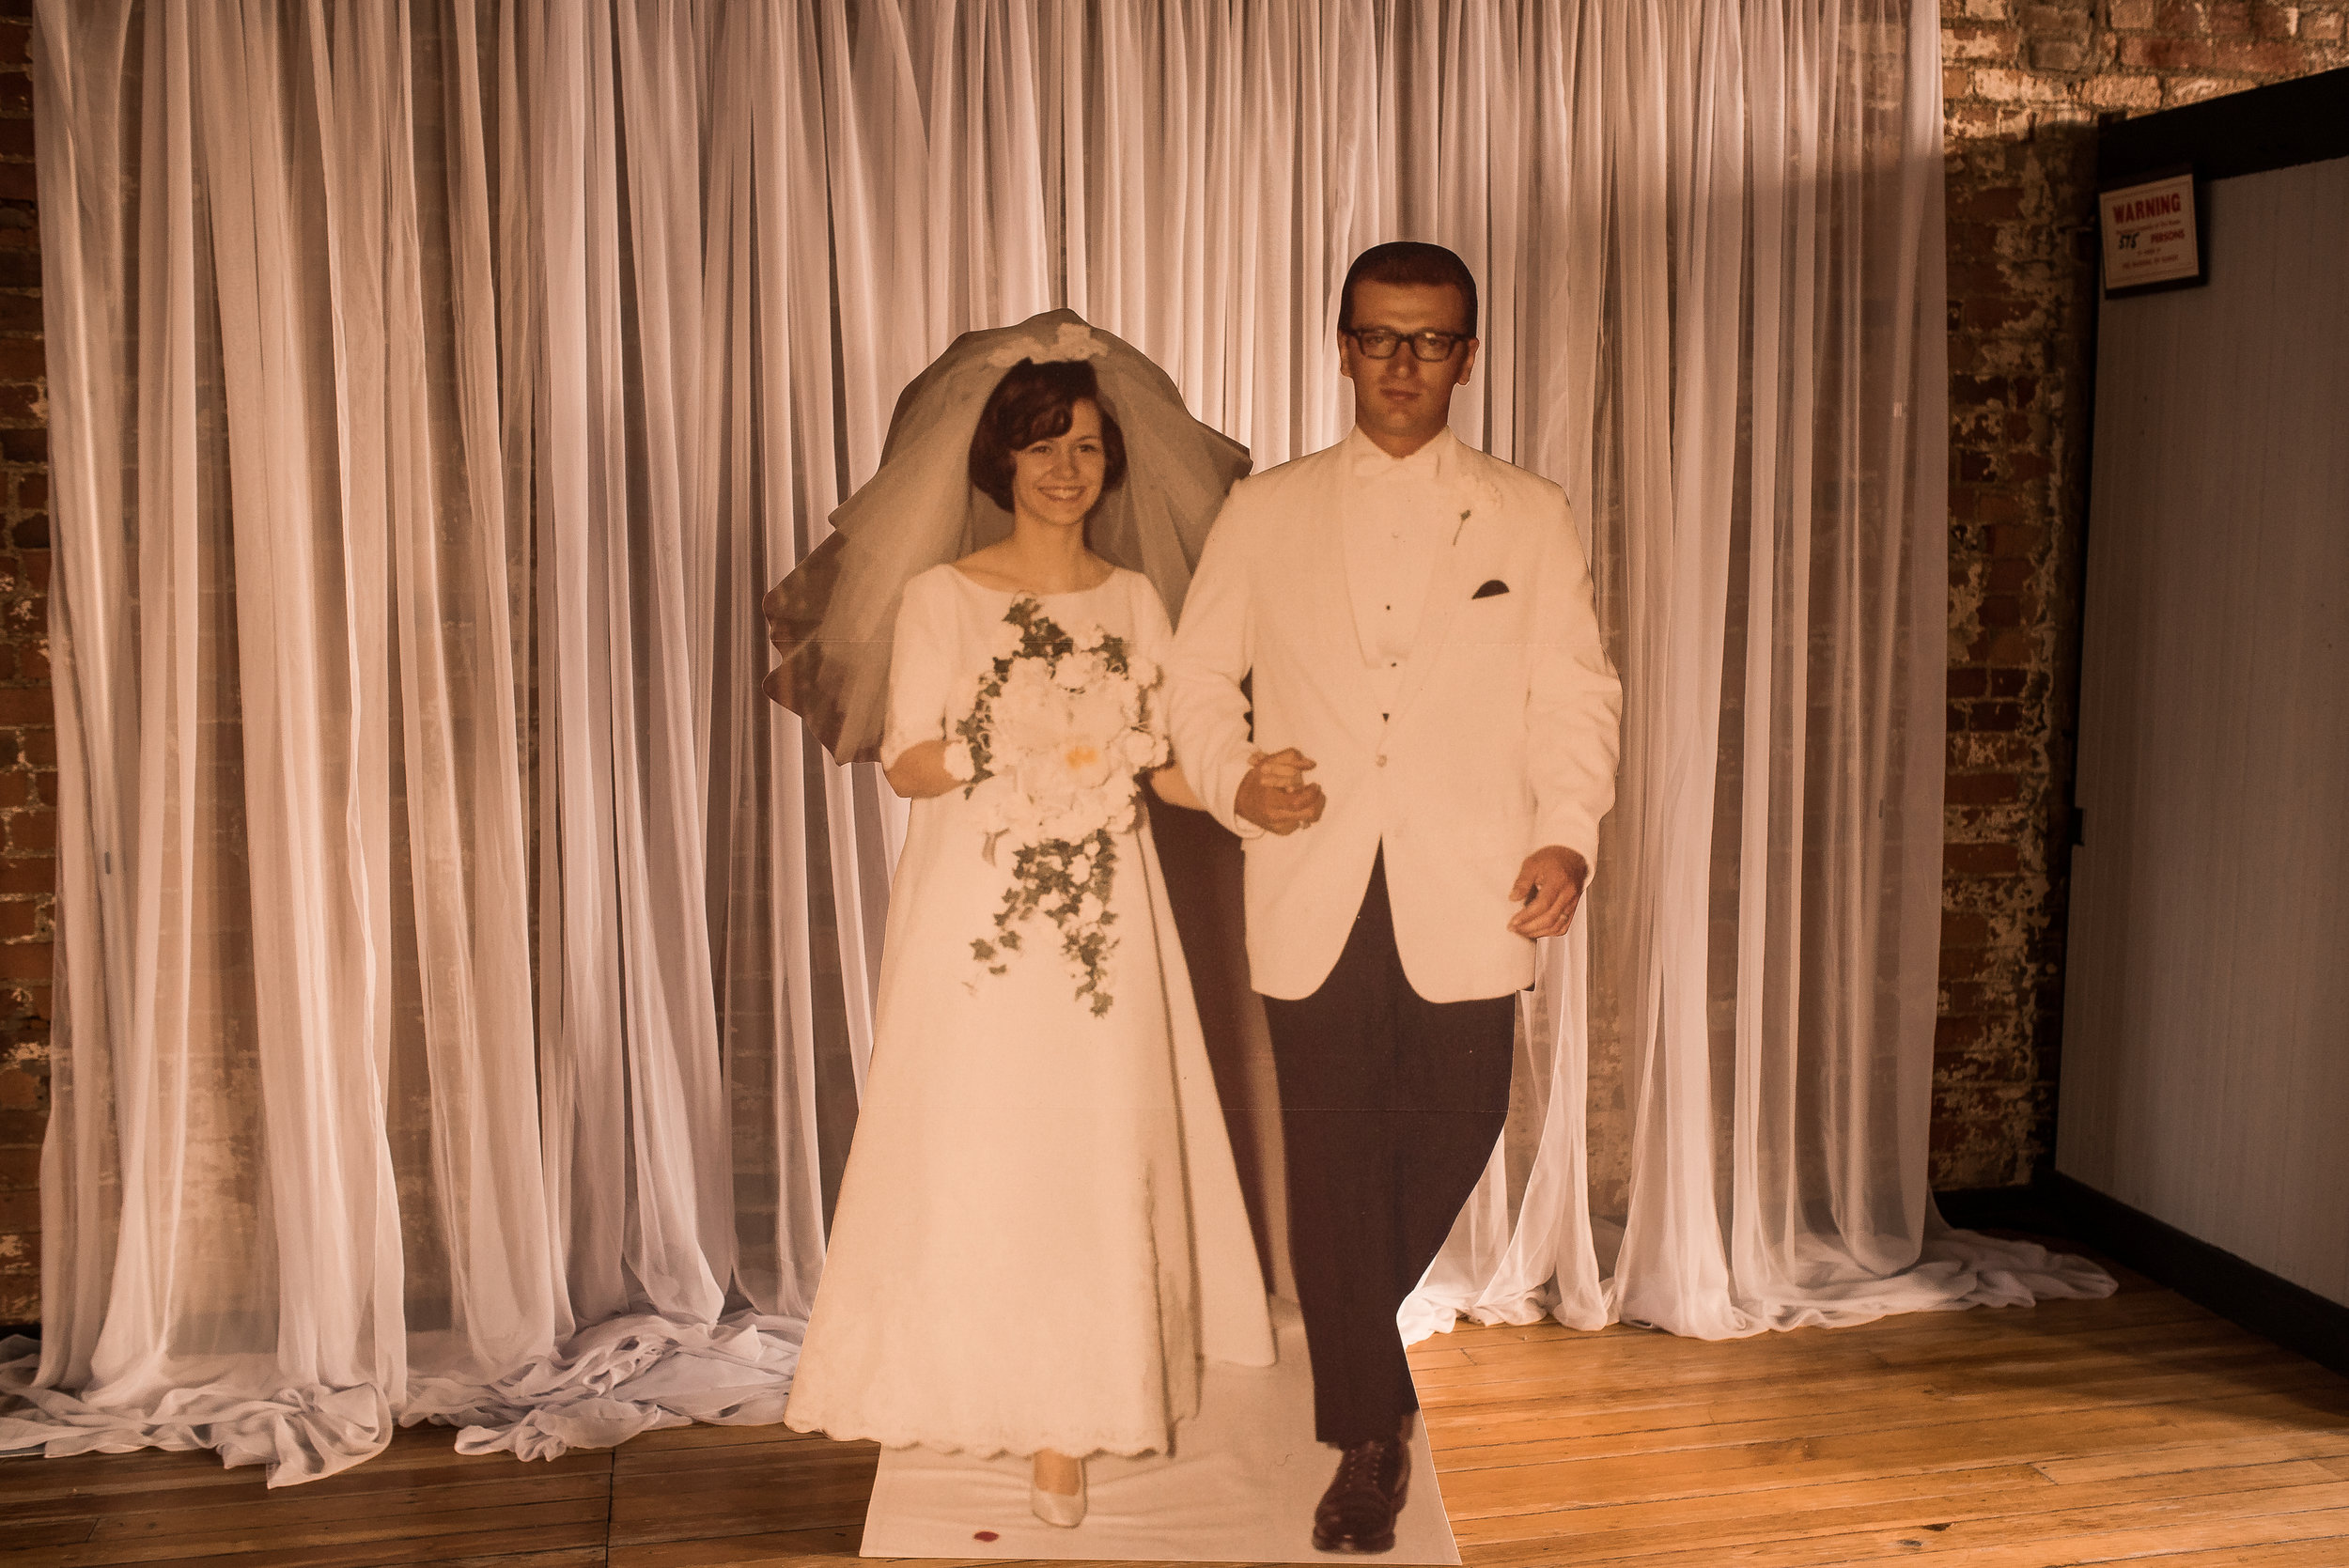 We had a wedding photo turned into a foam core, life-size cutout so guests could take a picture with the bride & groom.